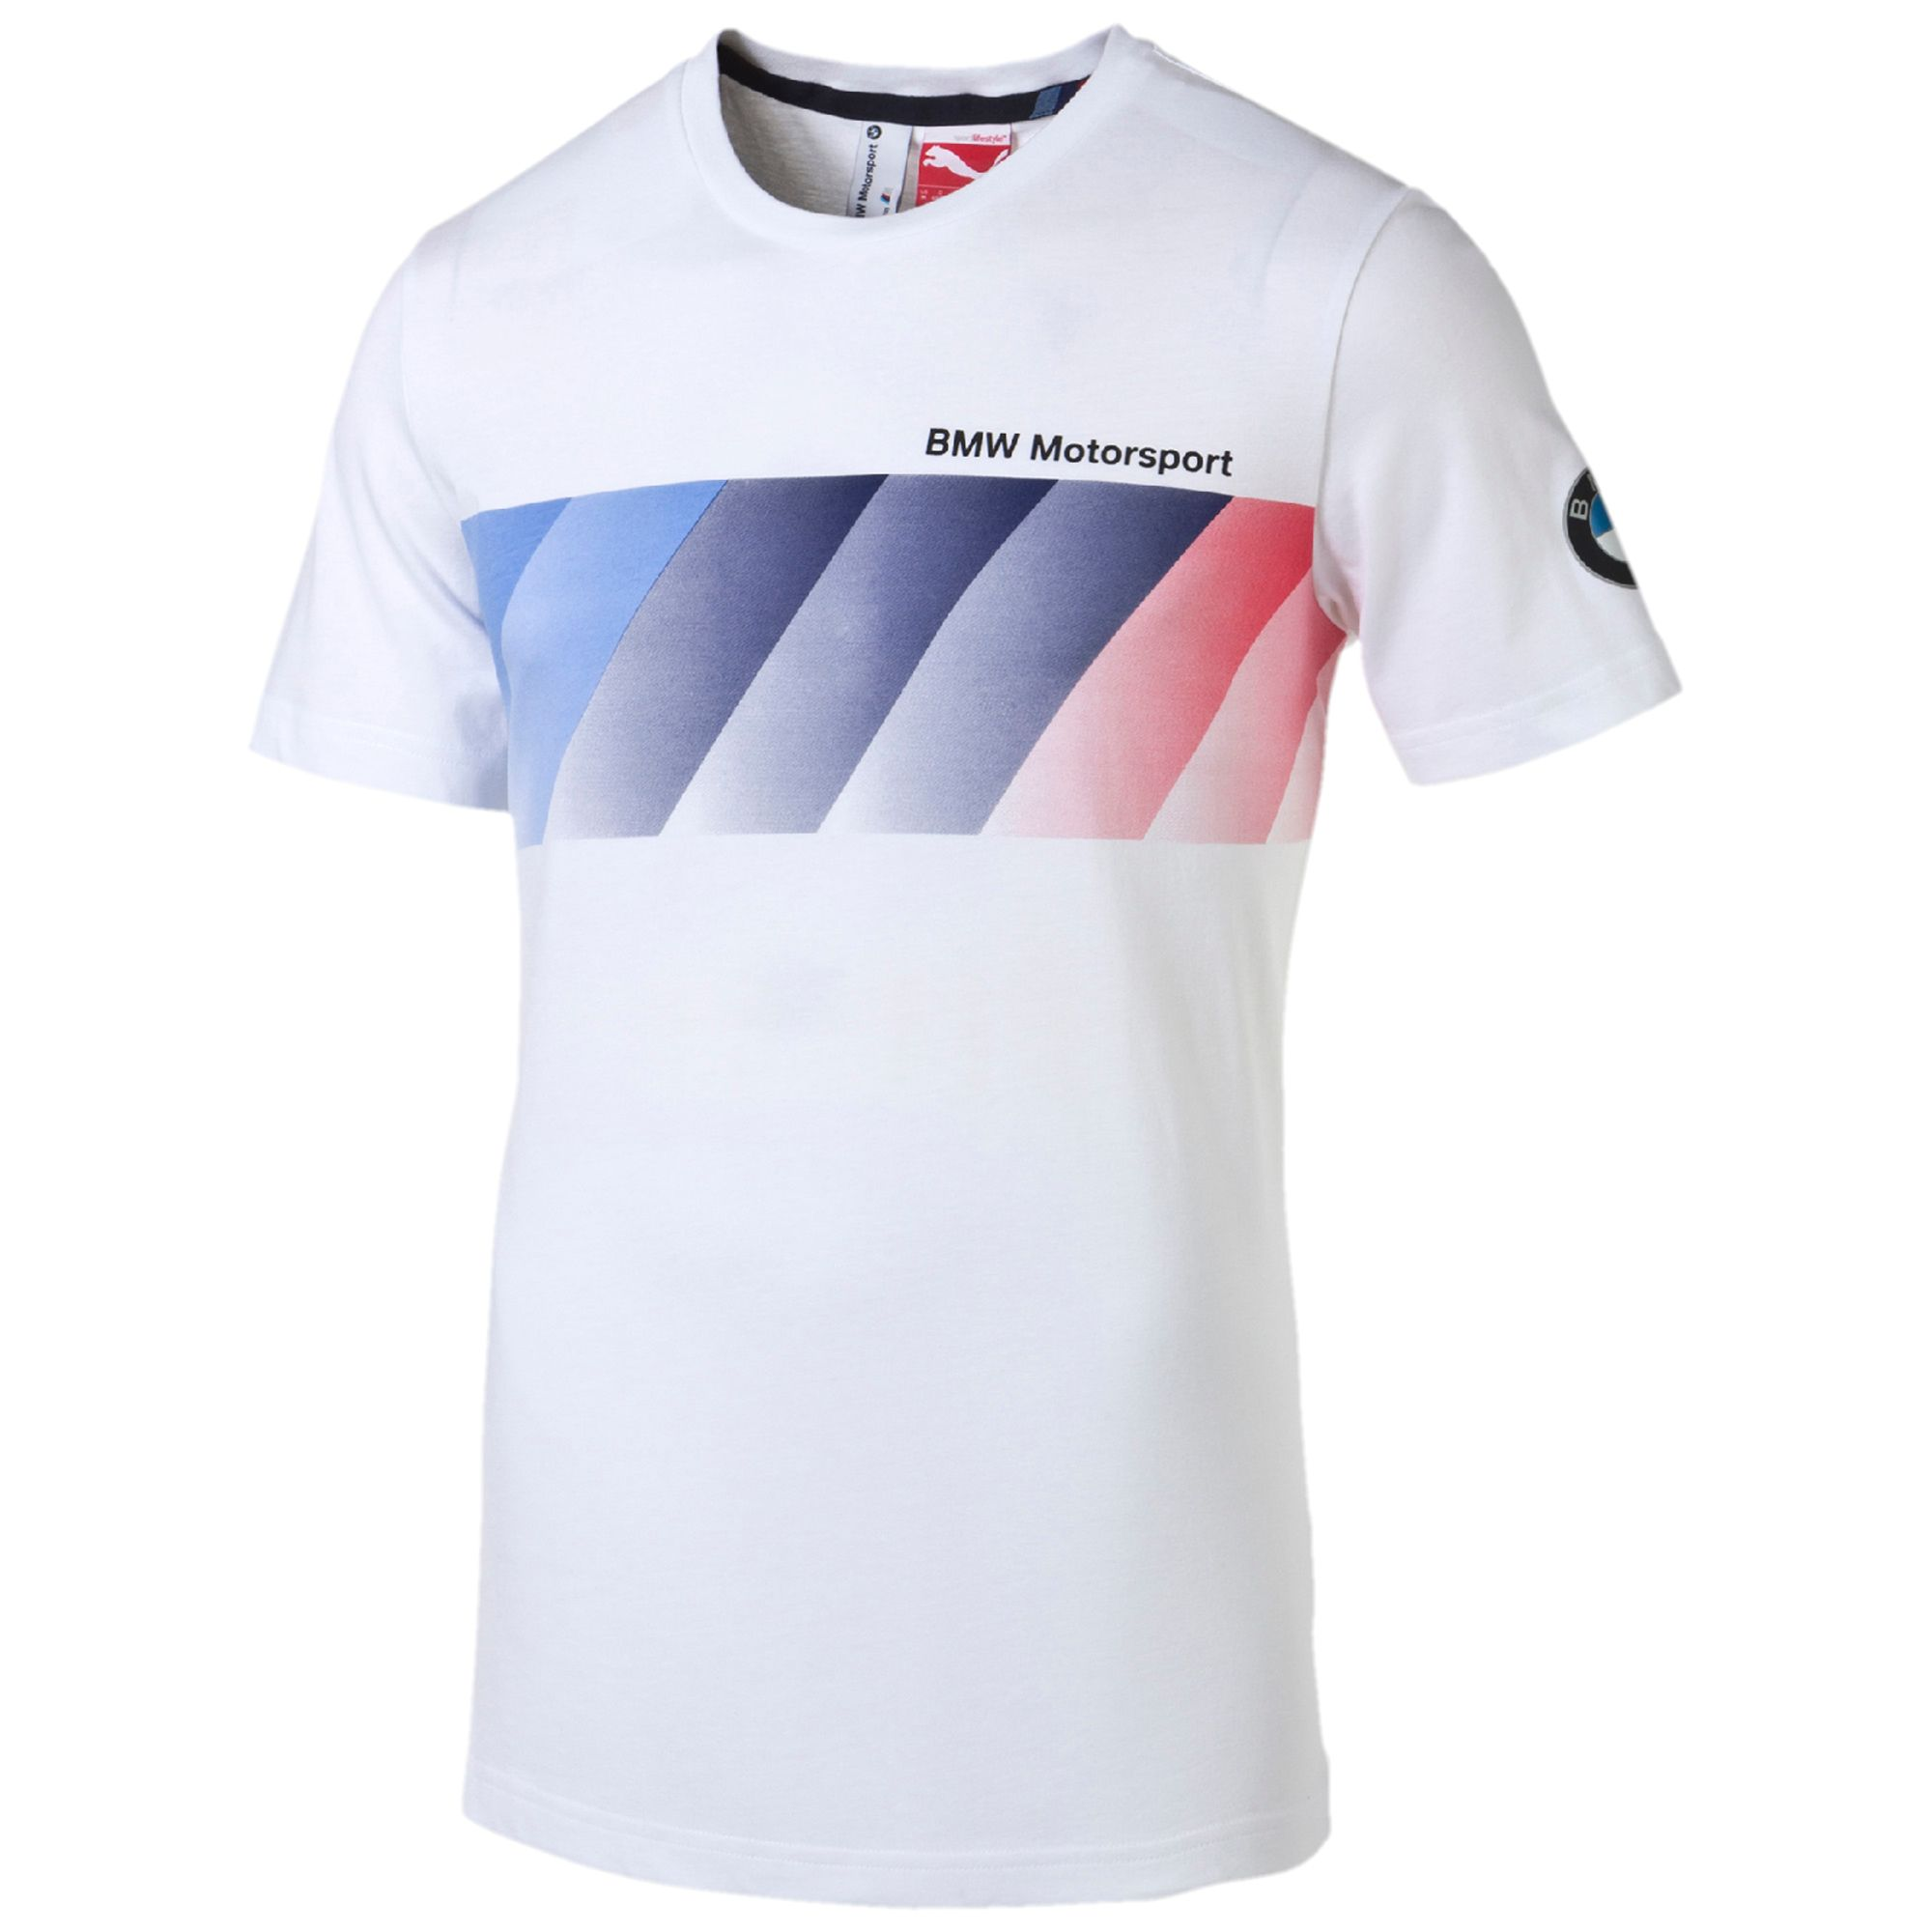 puma bmw motorsport t shirt bekleidung t shirts shirt. Black Bedroom Furniture Sets. Home Design Ideas